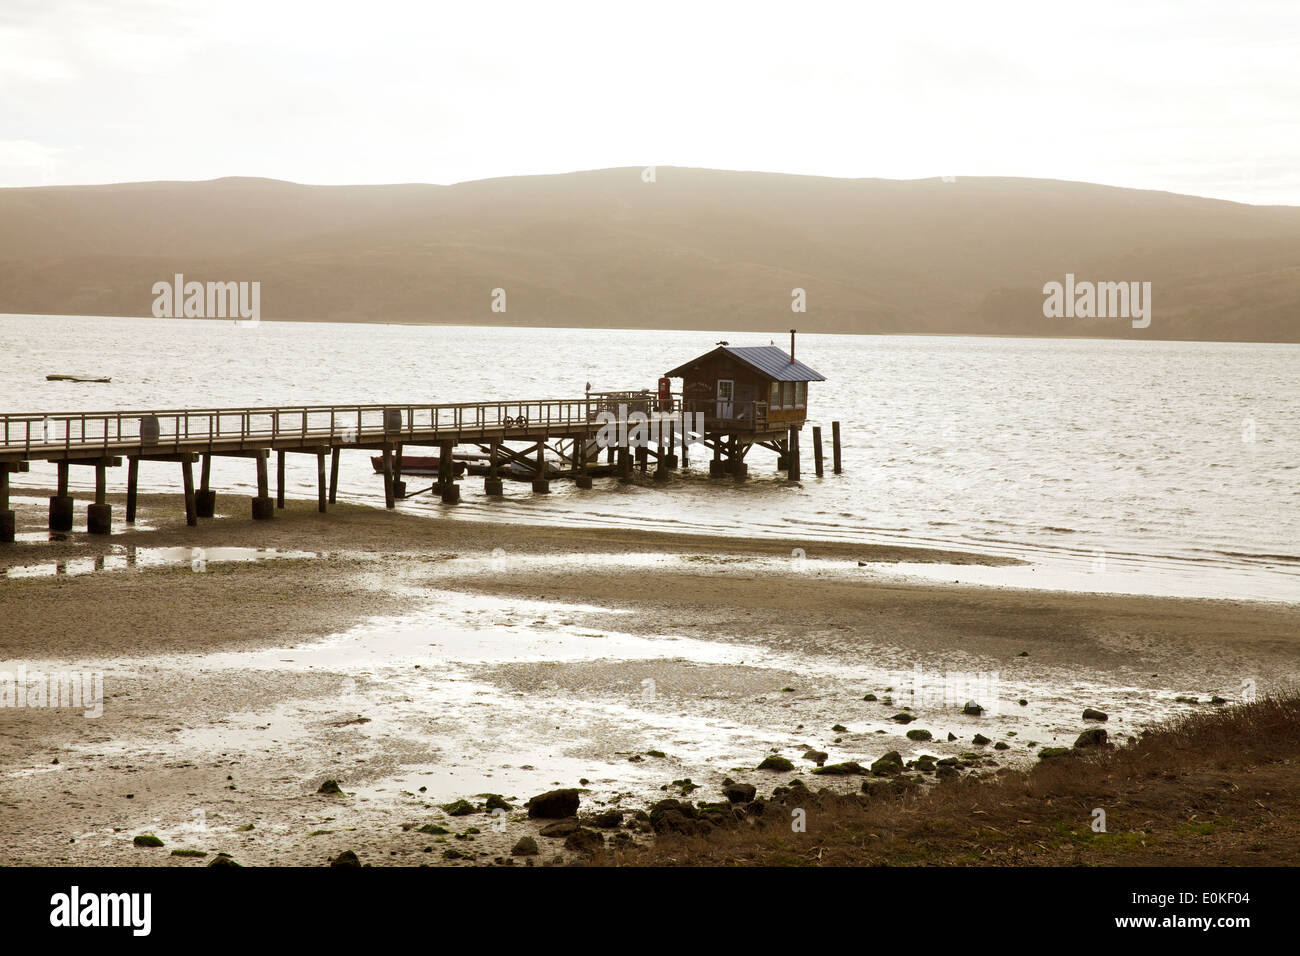 A boathouse on Tomales Bay. Stock Photo